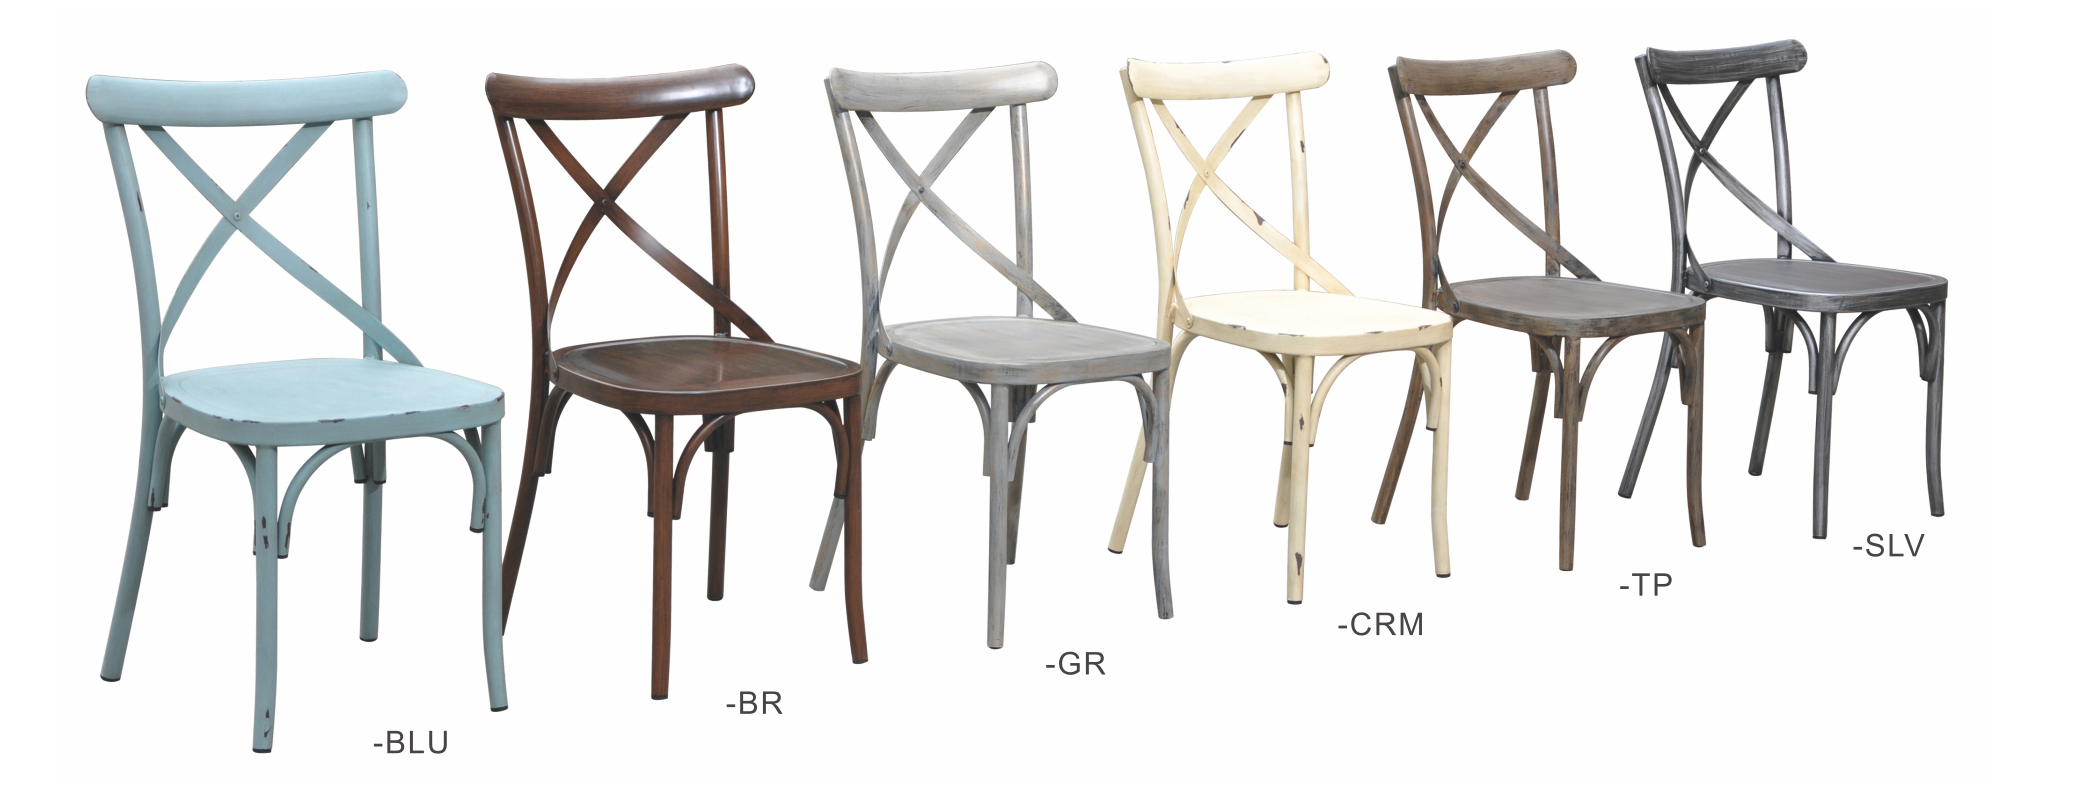 Kingston Casual French Country Chairs